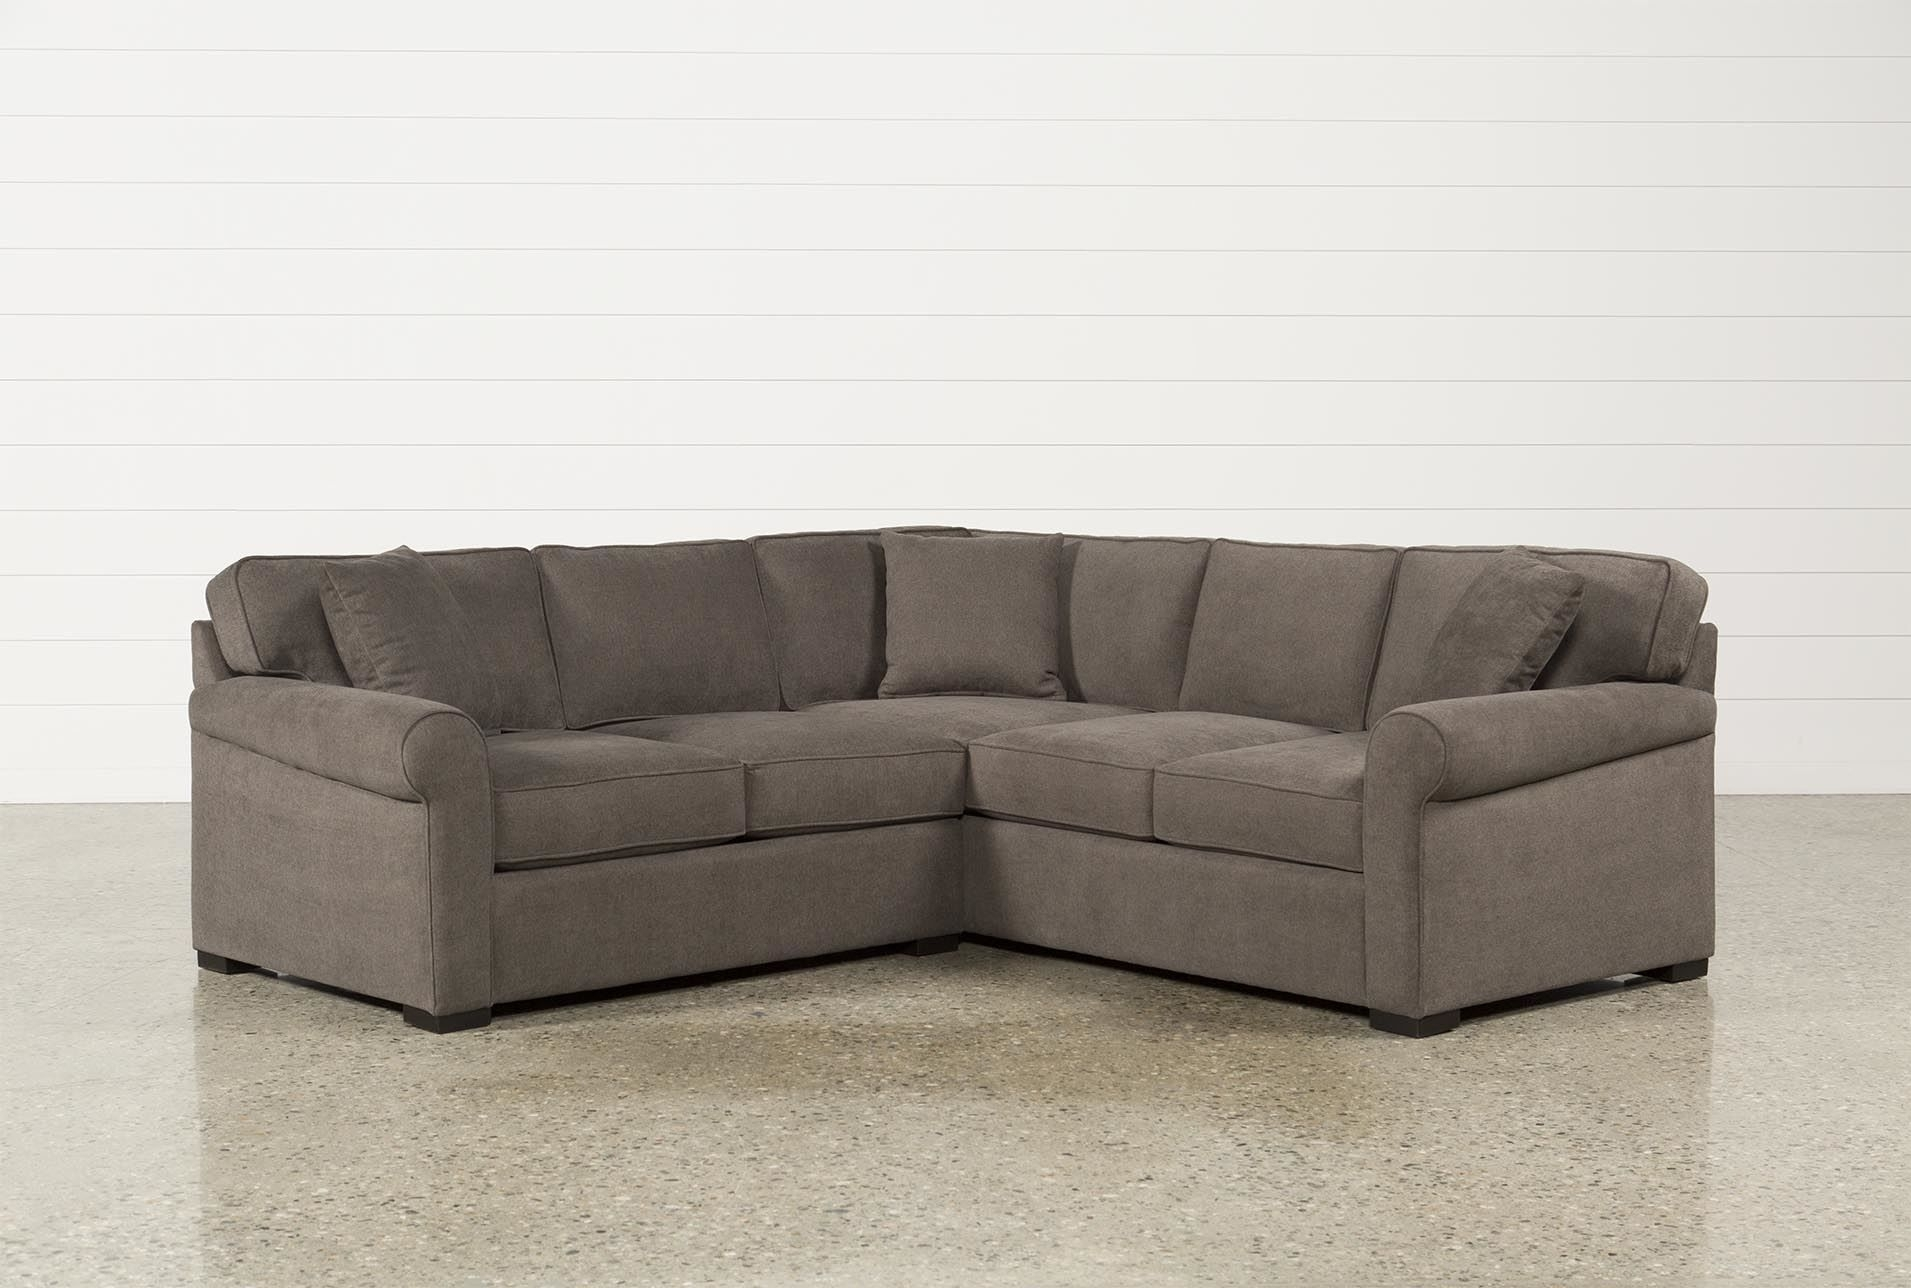 Elm Grande 2 Piece Sectional, Grey, Sofas | Pinterest | Living With Arrowmask 2 Piece Sectionals With Sleeper & Right Facing Chaise (Image 7 of 25)